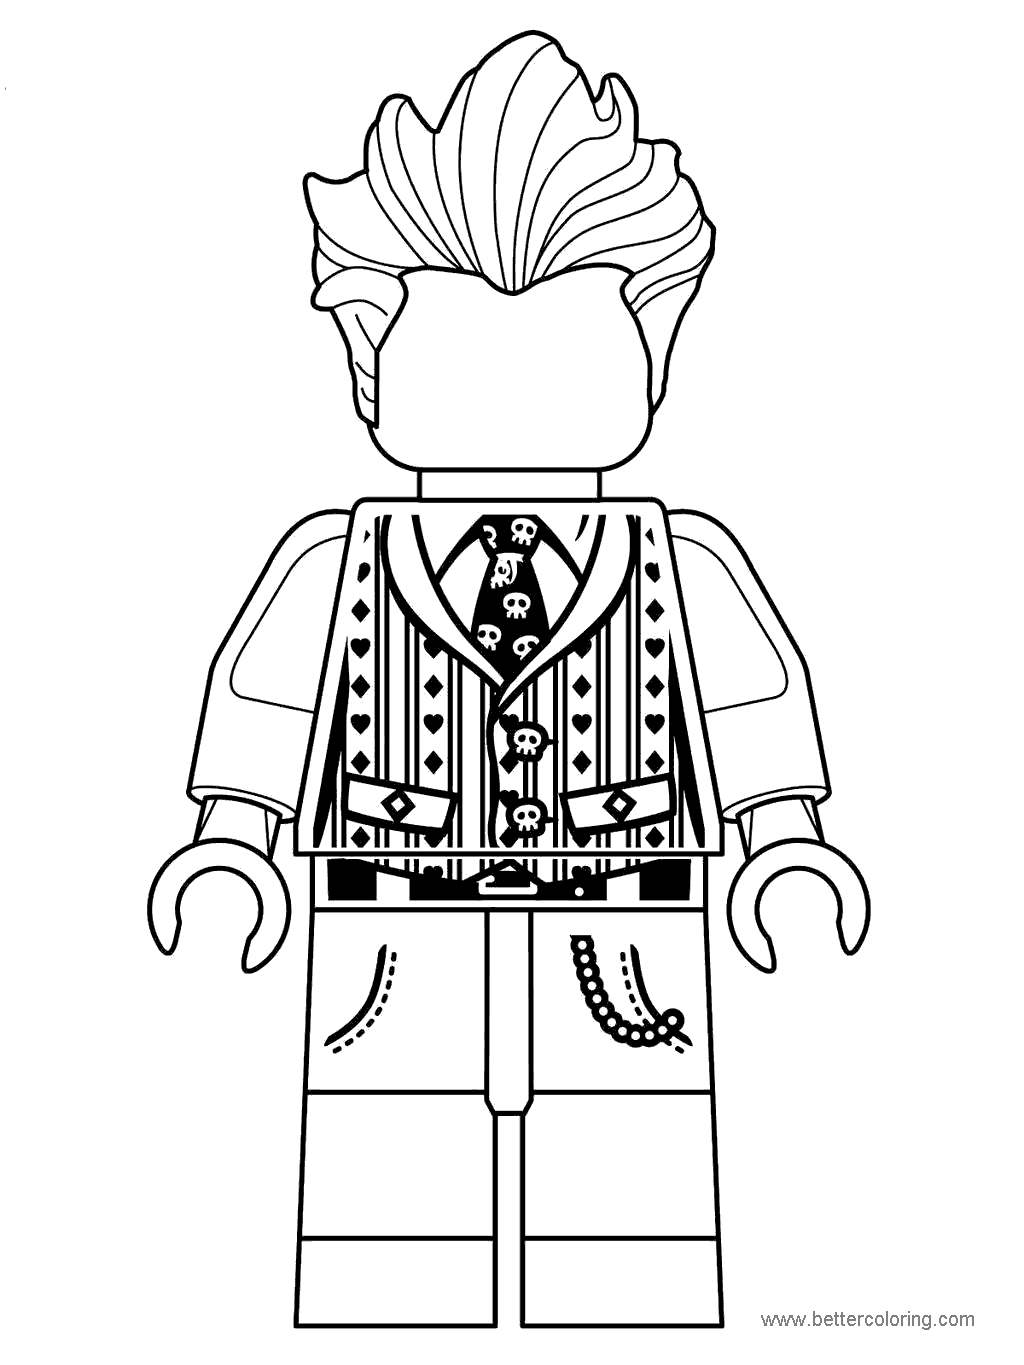 Free Lego Movie Character Coloring Pages printable